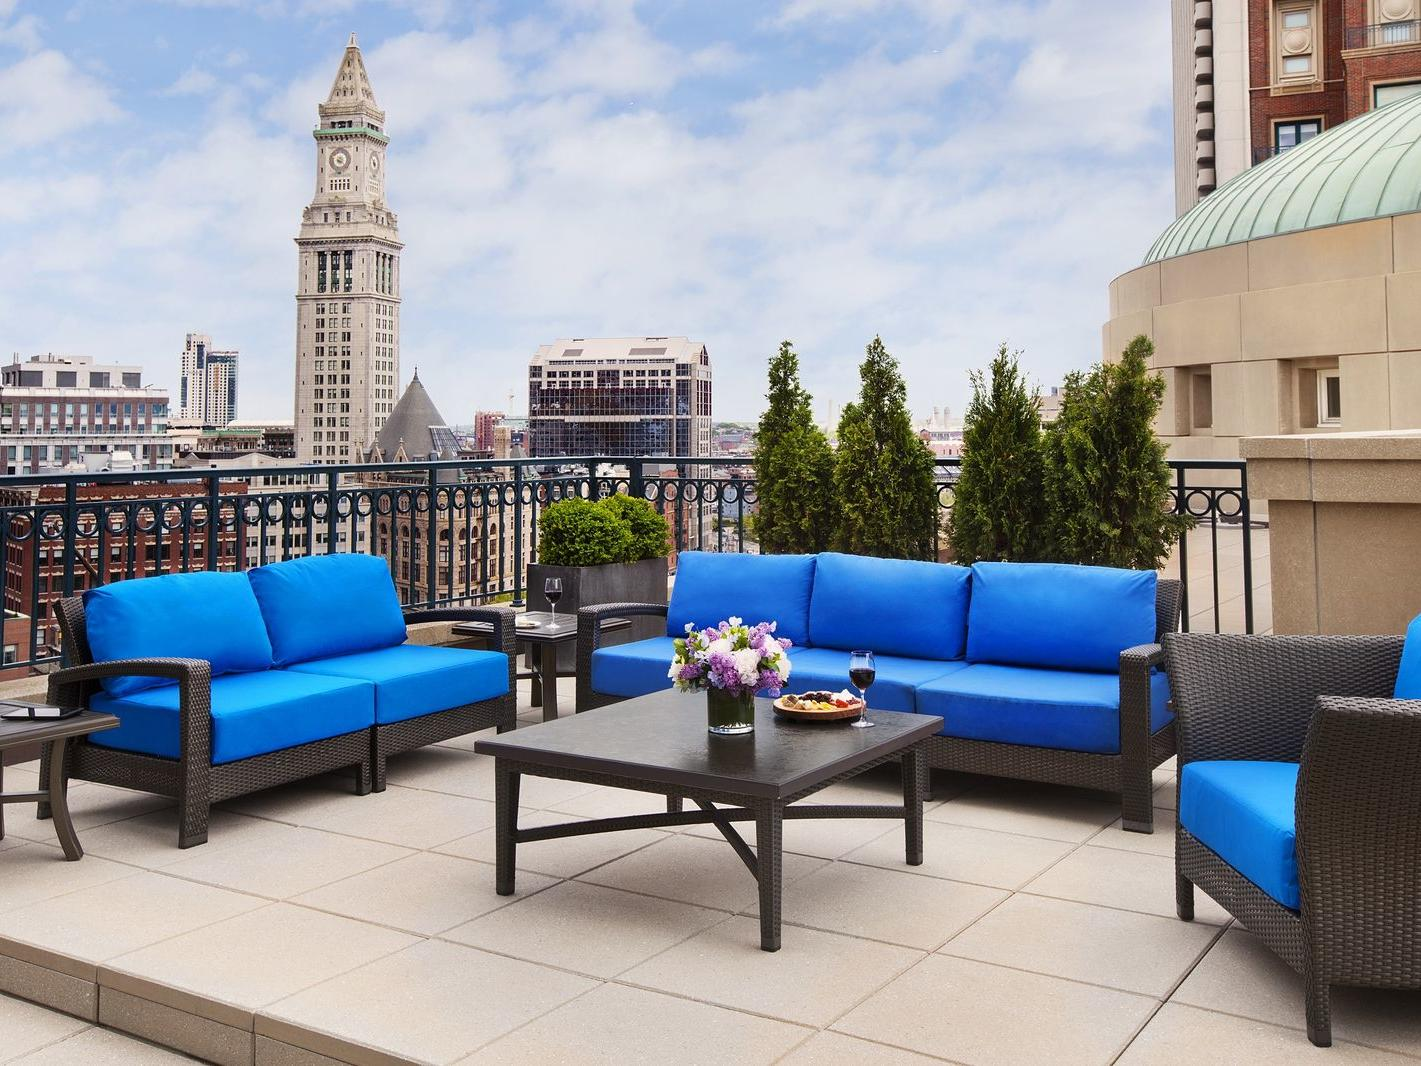 Outdoor furniture on patio with city skyline view